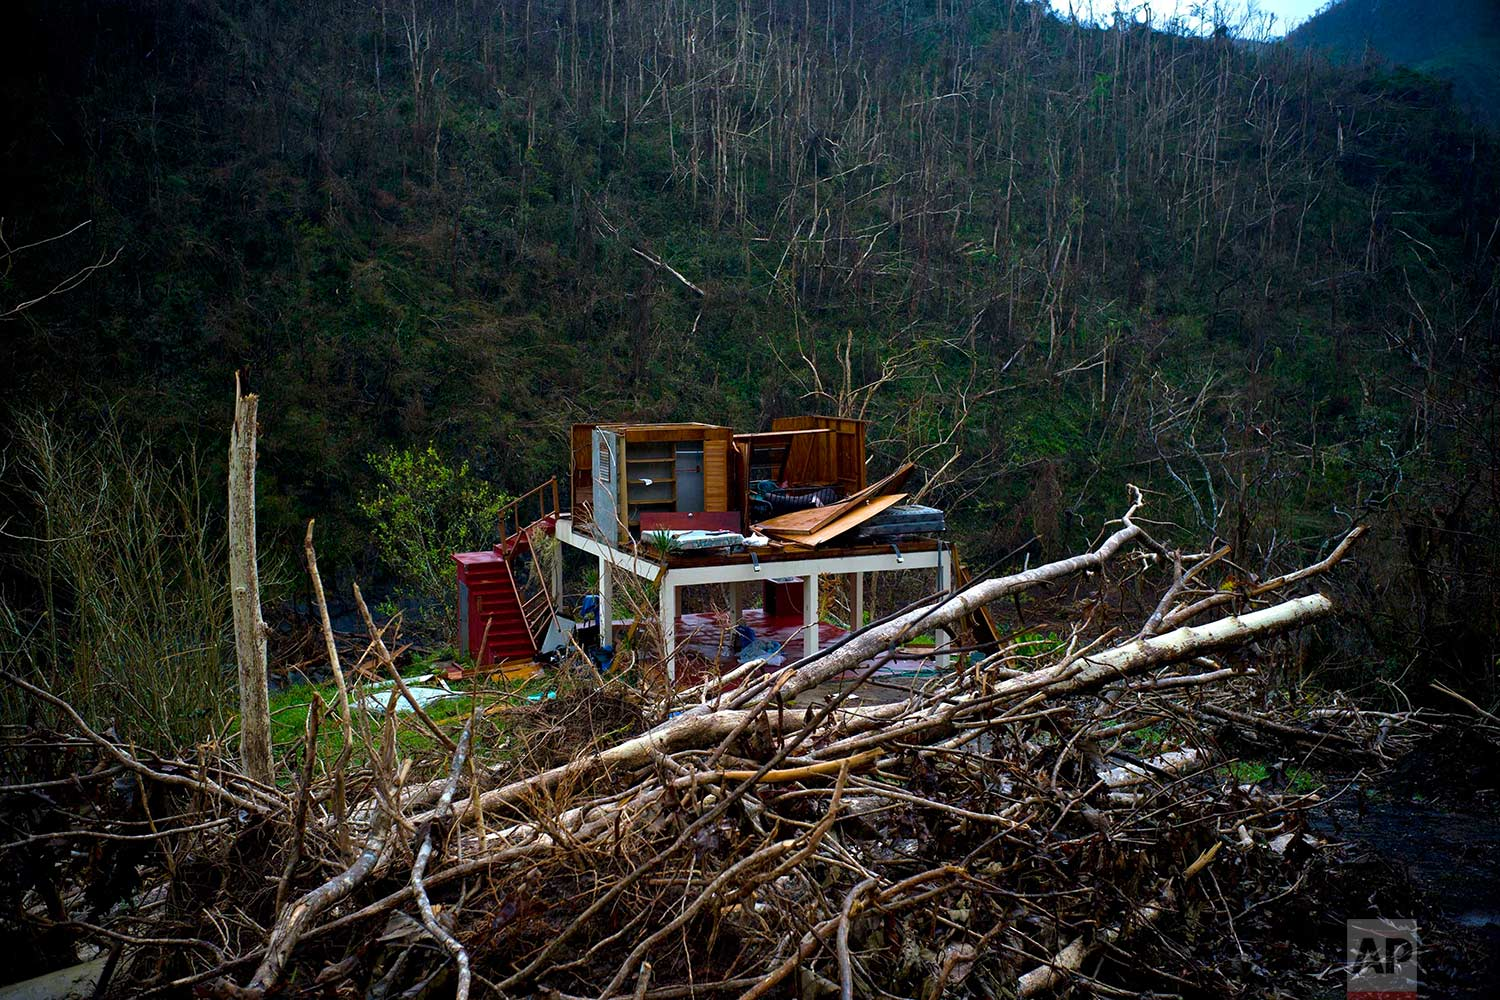 In this Saturday, Sept. 30, 2017 photo, the foundation of a heavily damaged house stands in the mountains after the passing of Hurricane Maria in the San Lorenzo neighborhood of Morovis, Puerto Rico. (AP Photo/Ramon Espinosa)